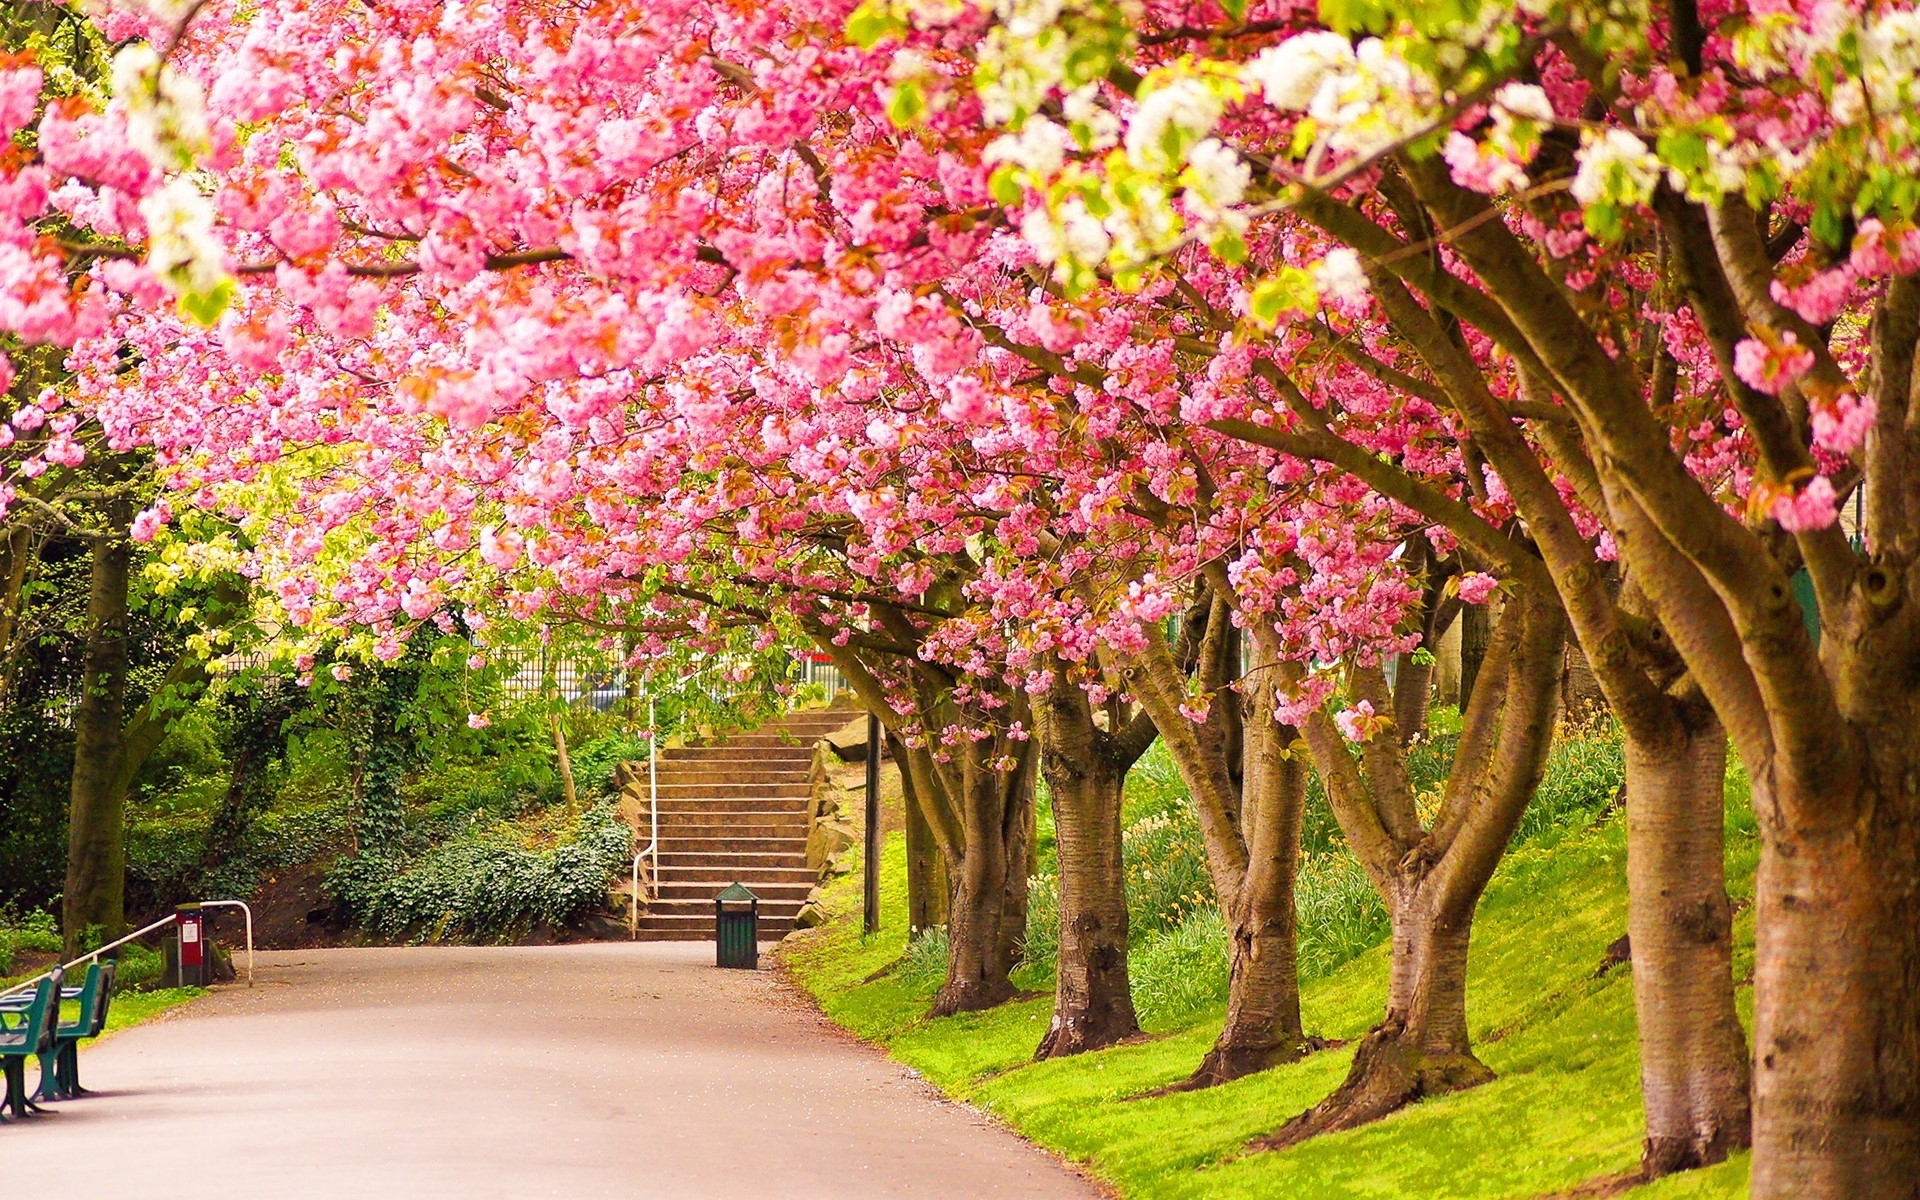 spring nature desktop wallpaper hd widescreen high quality photos